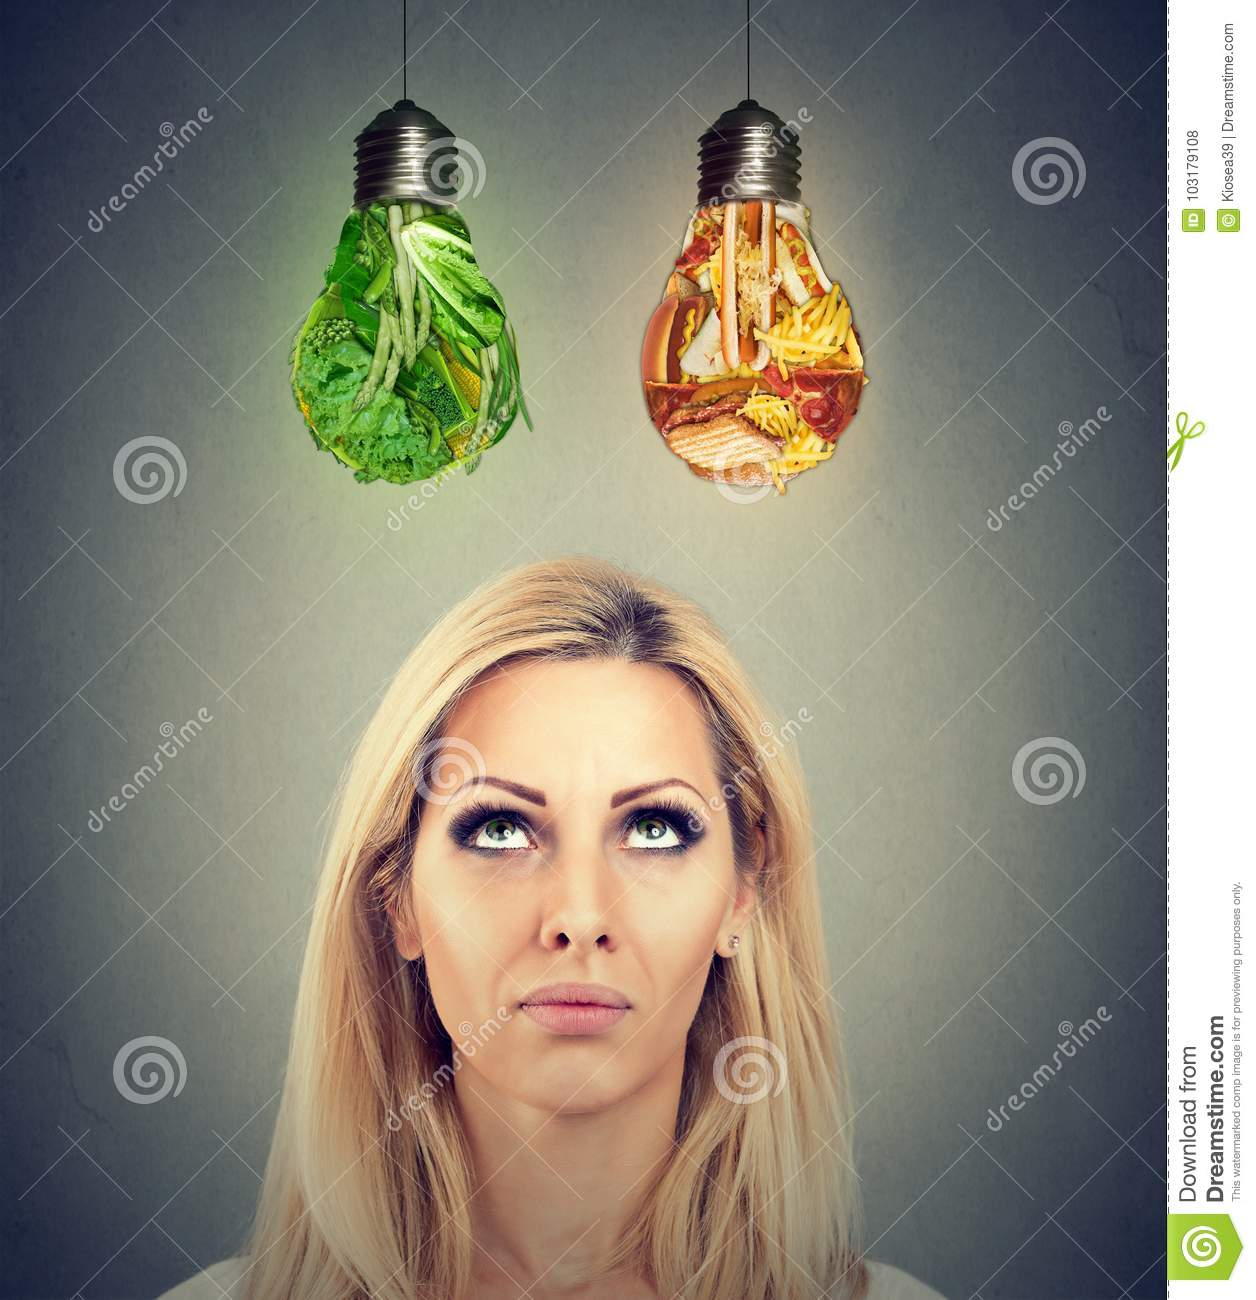 Woman thinking making a diet choice looking up at junk food and green vegetables shaped as light bulb